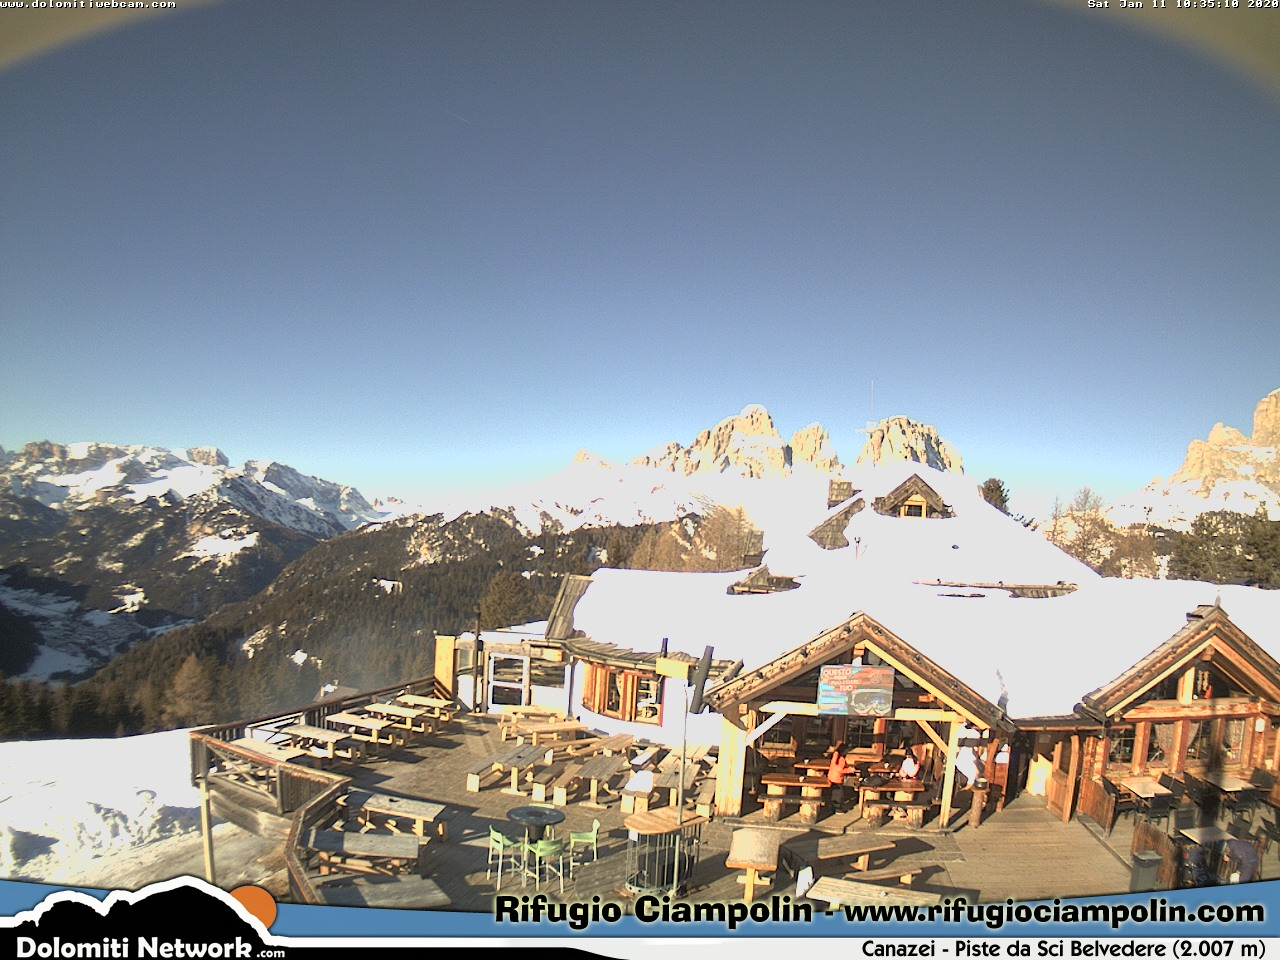 Webcam en Rifugio Ciampolin, Val di Fassa (Alpes Italianos)